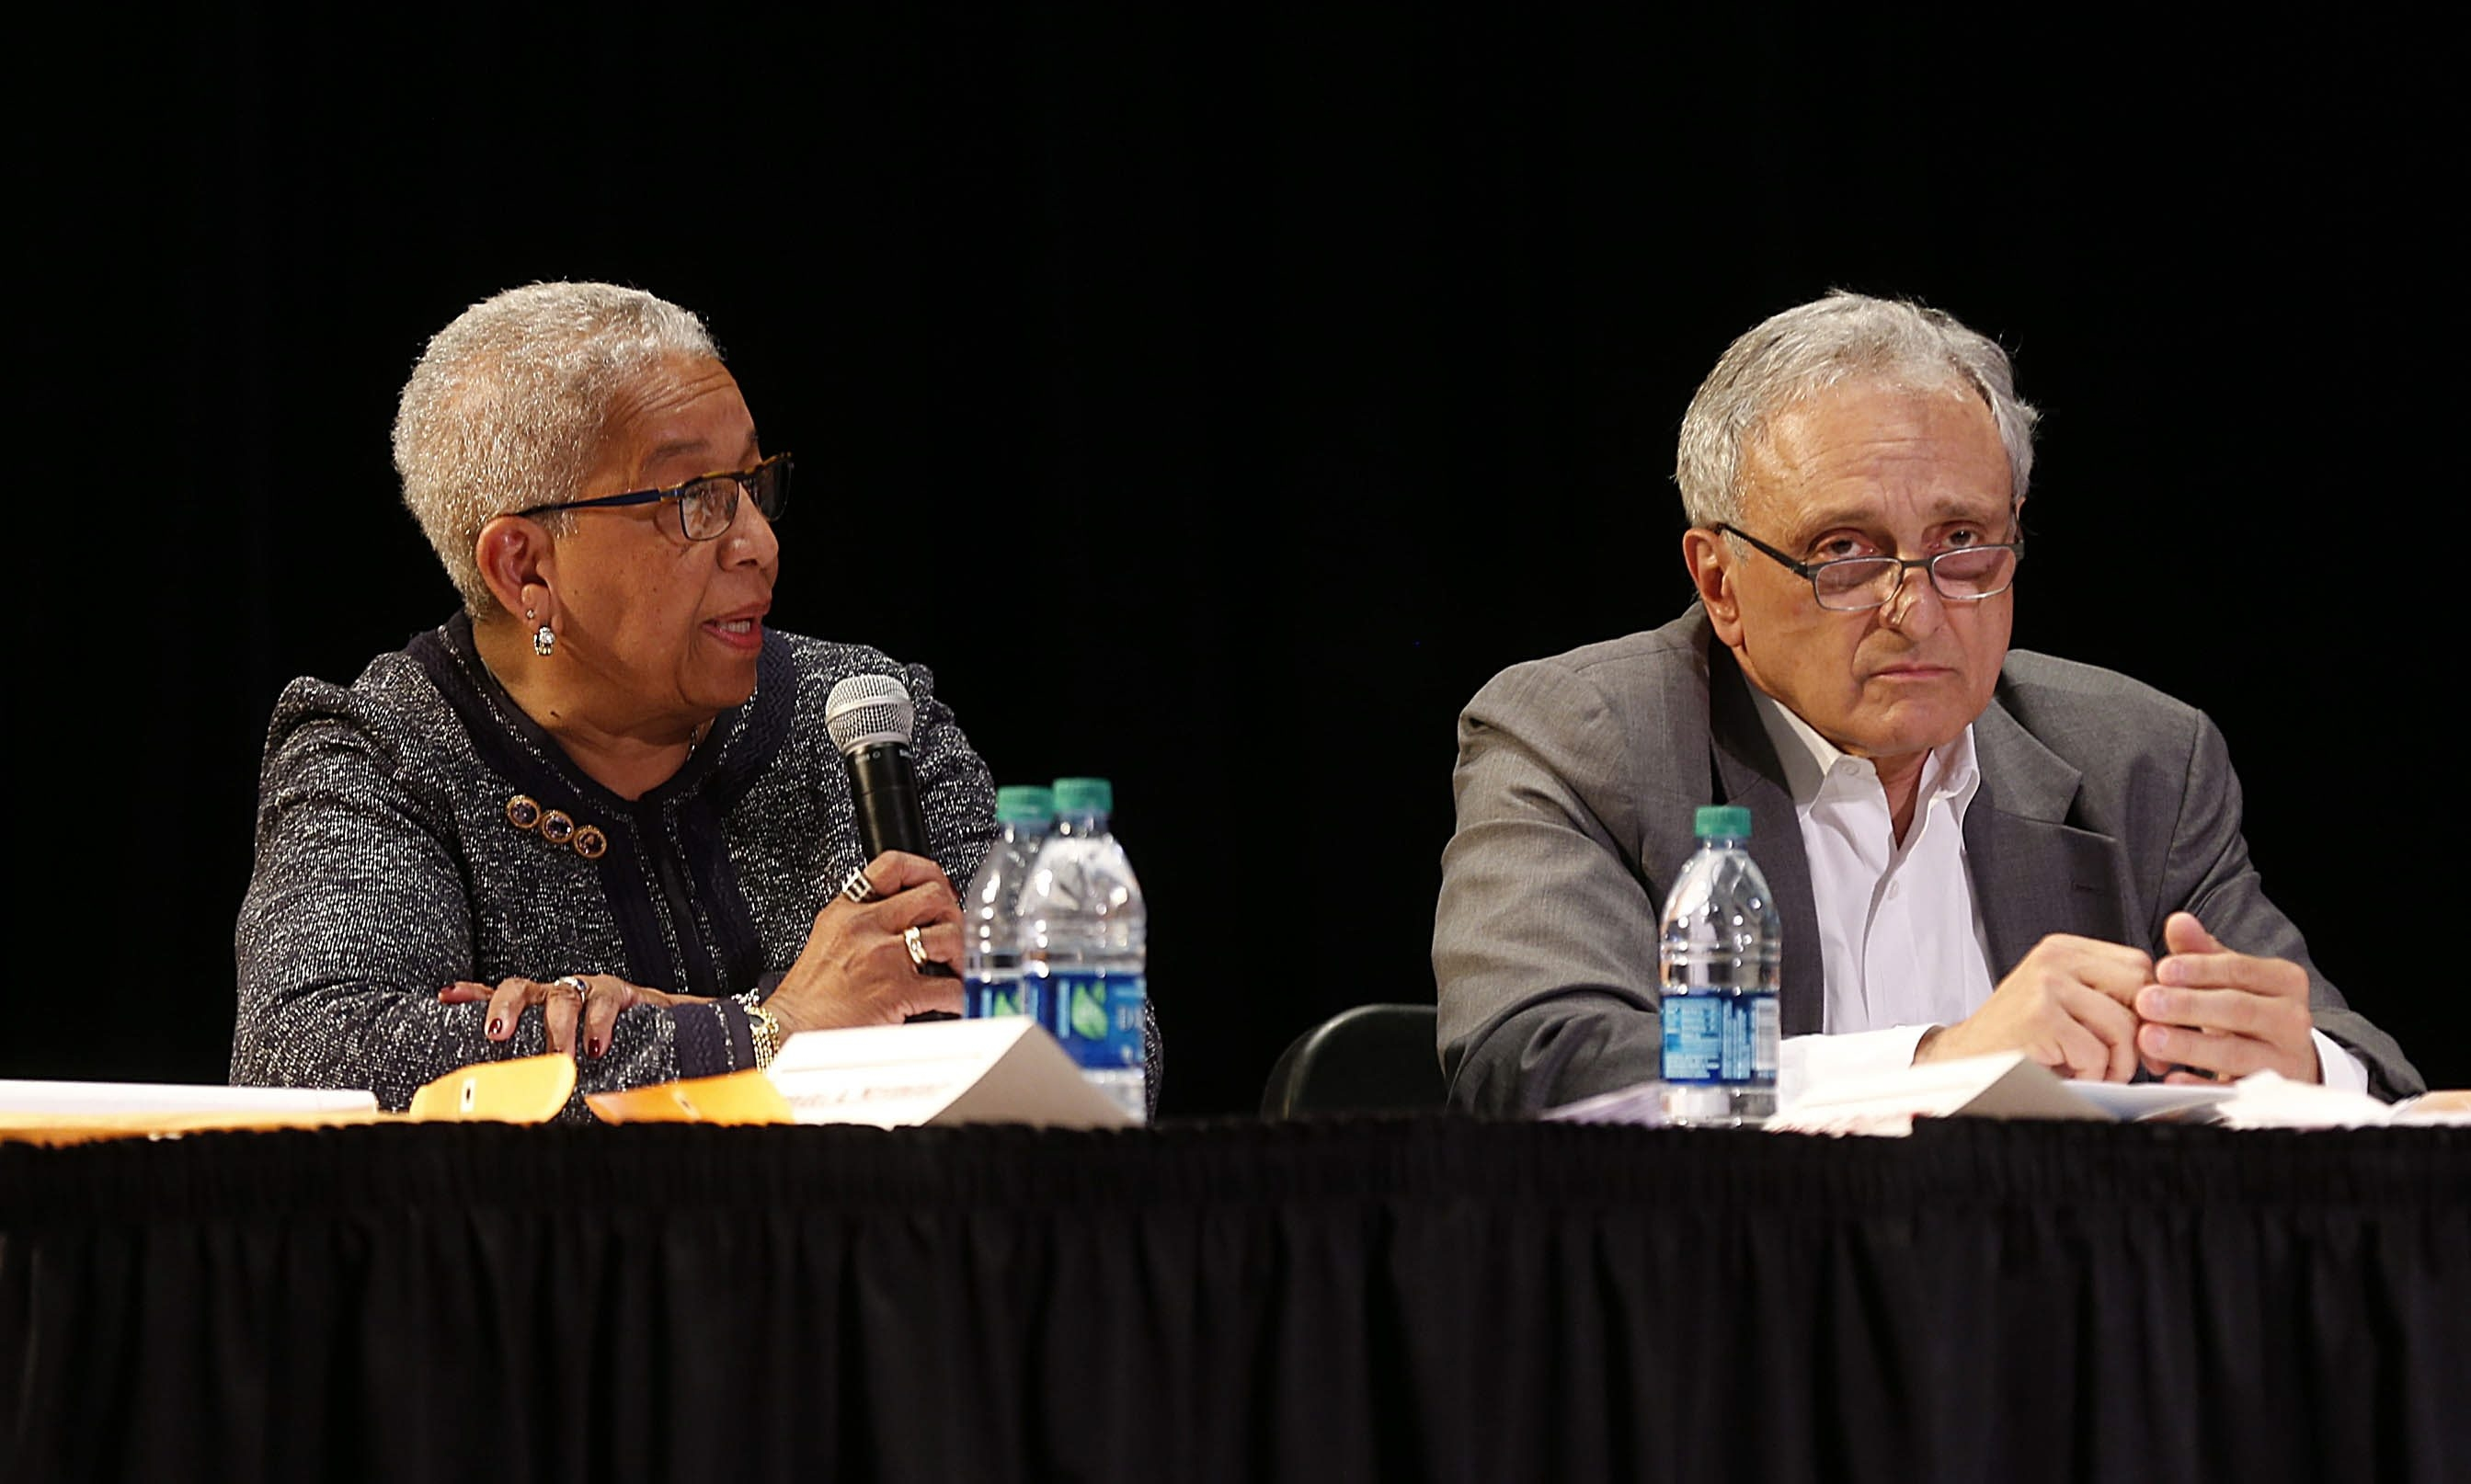 Buffalo Board of Education members Barbara Seals Nevergold, left, expresses her dissatisfaction with the way the board's majority – which includes Carl Paladino, right – attempted to unilaterally select a school superintendent without consulting the board minority or the community. The meeting took place Wednesday at the Academy for Visual and Performing Arts on Masten Avenue.